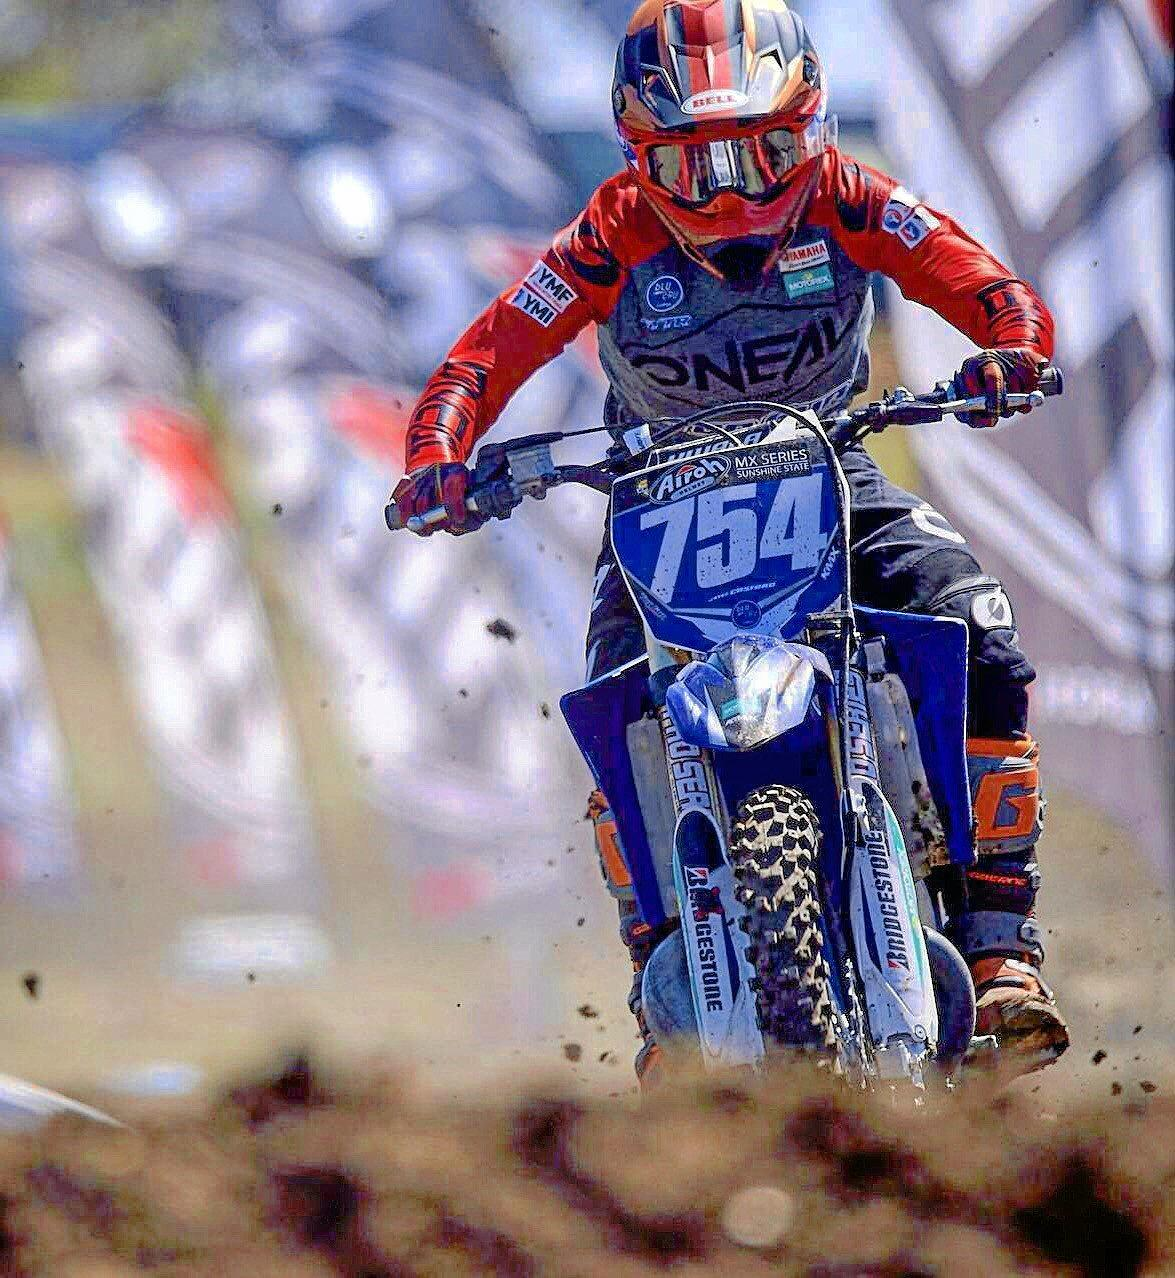 RACING ROCK STAR: Motocross racer Jayce Cosford rides to victory at the Sunshine State MX Series.